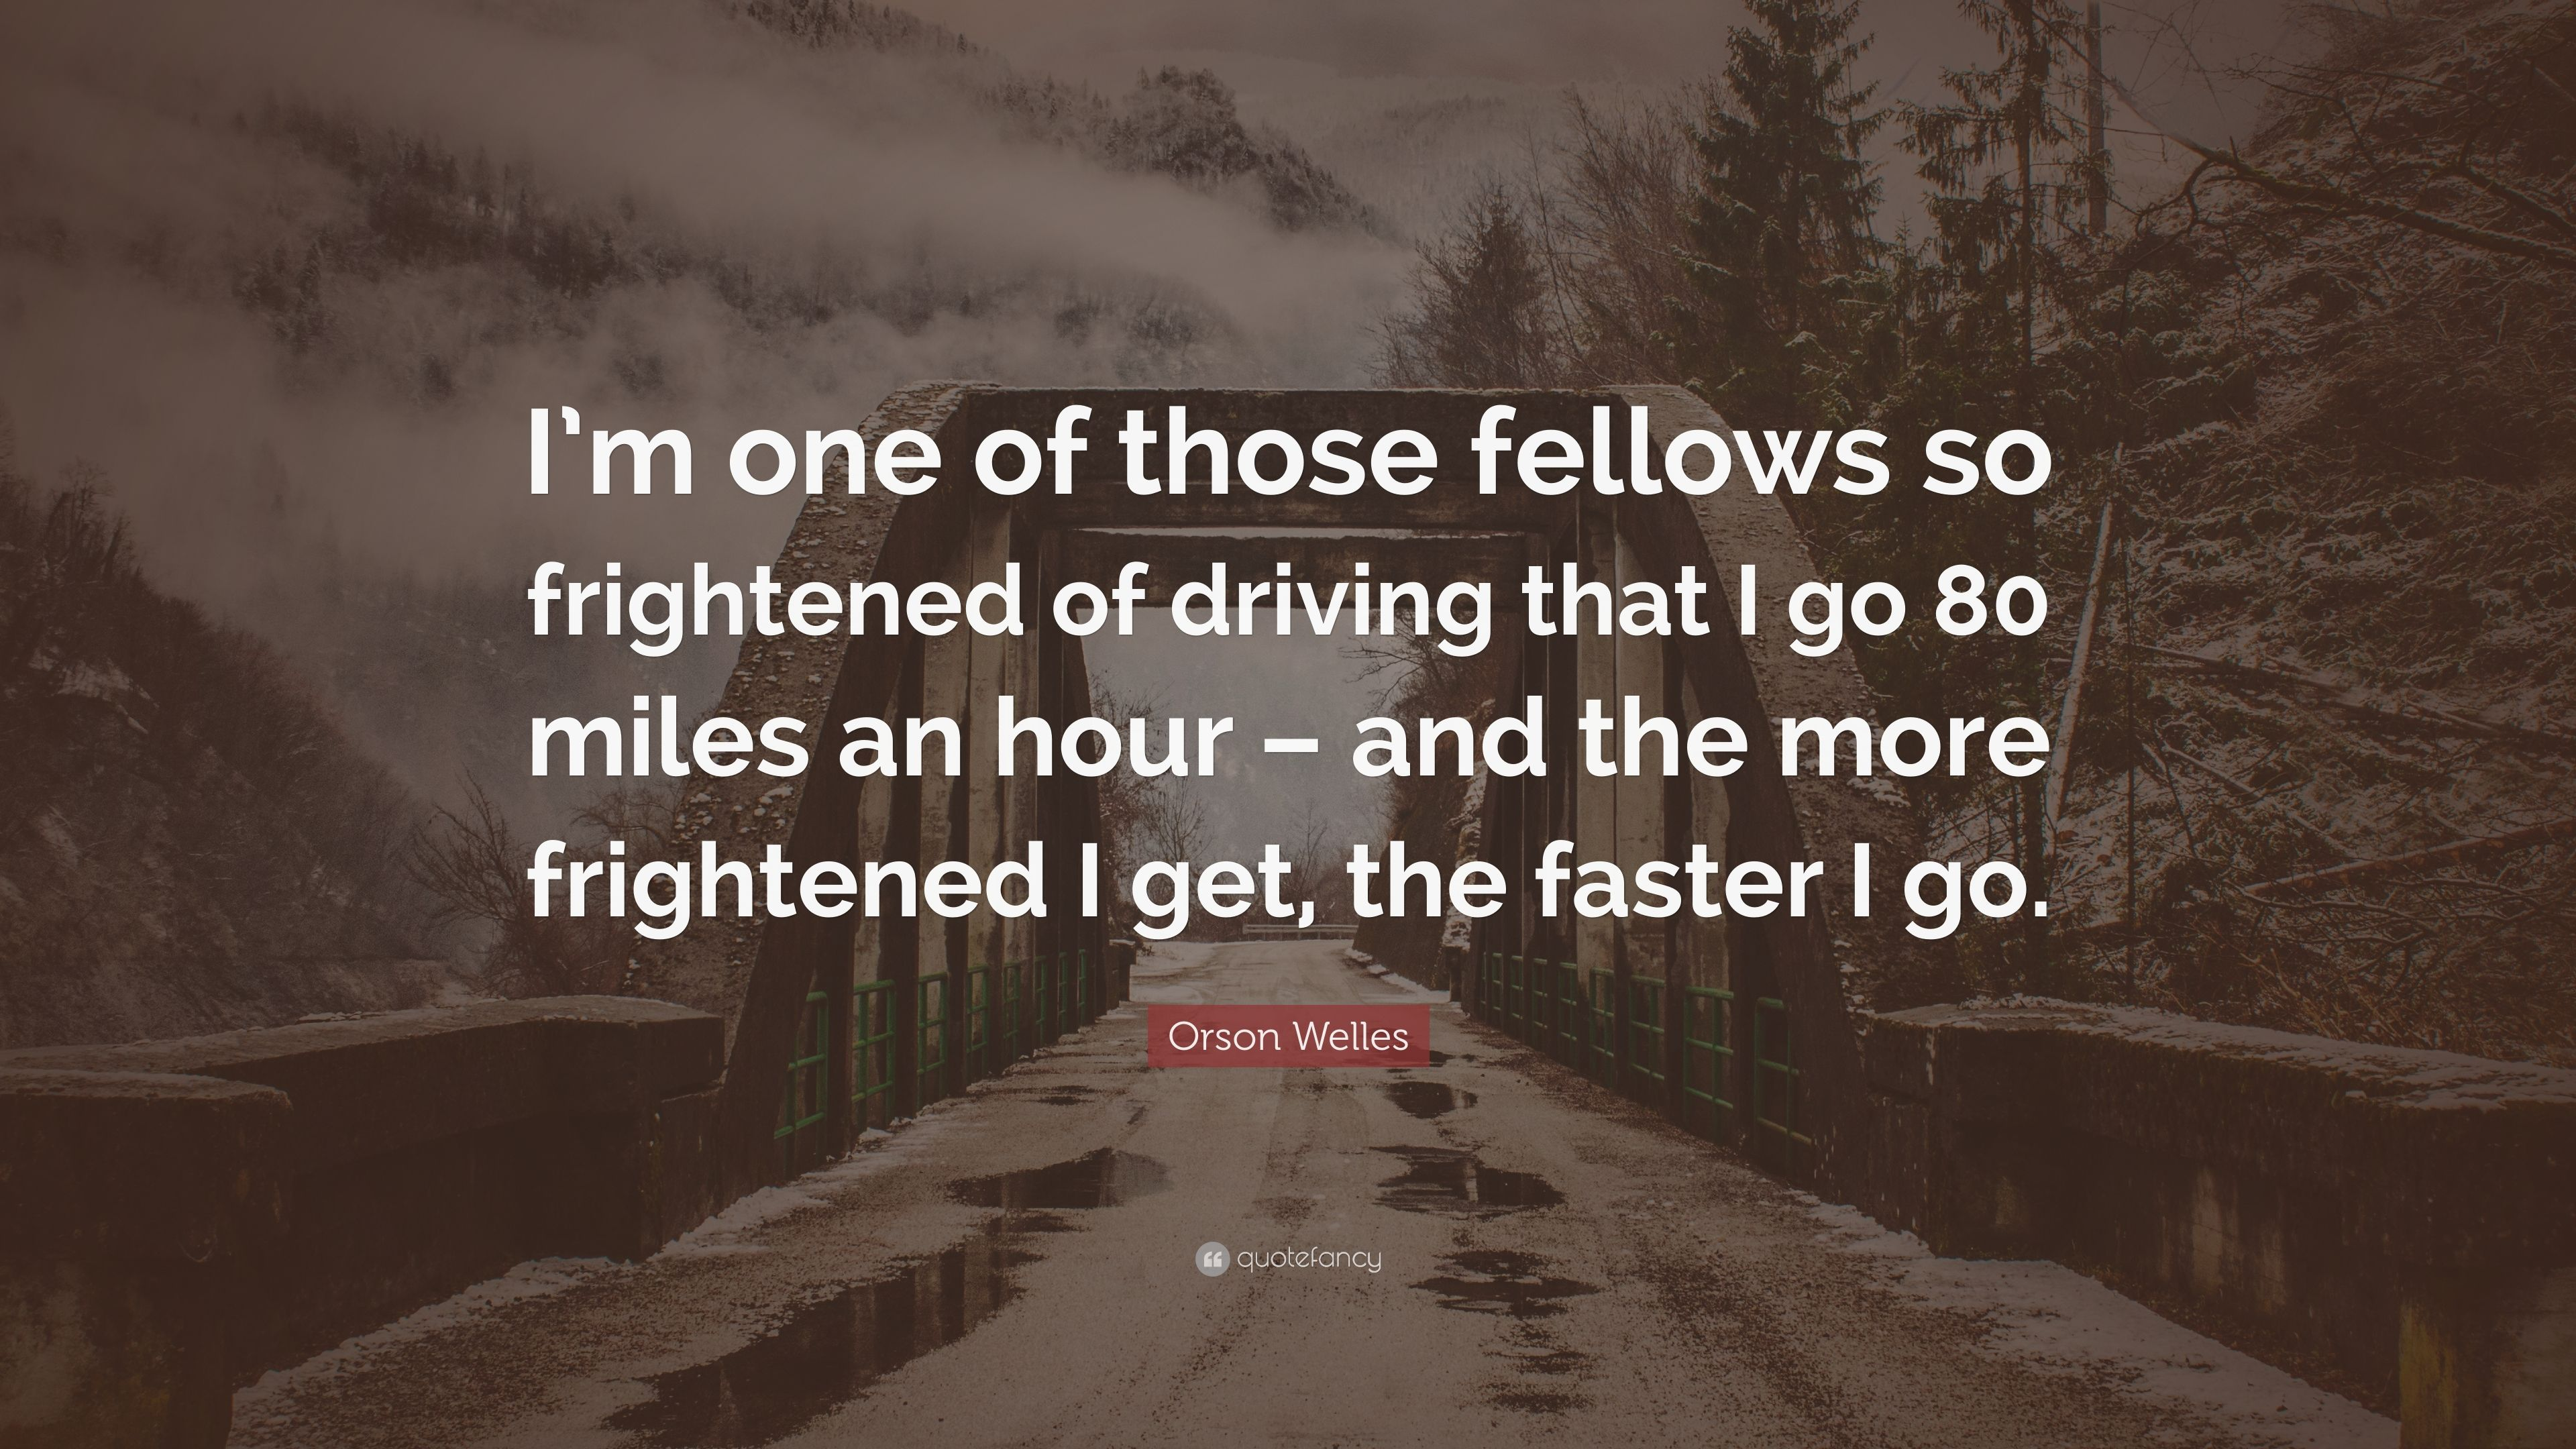 Orson Welles Quote: U201cIu0027m One Of Those Fellows So Frightened Of Driving